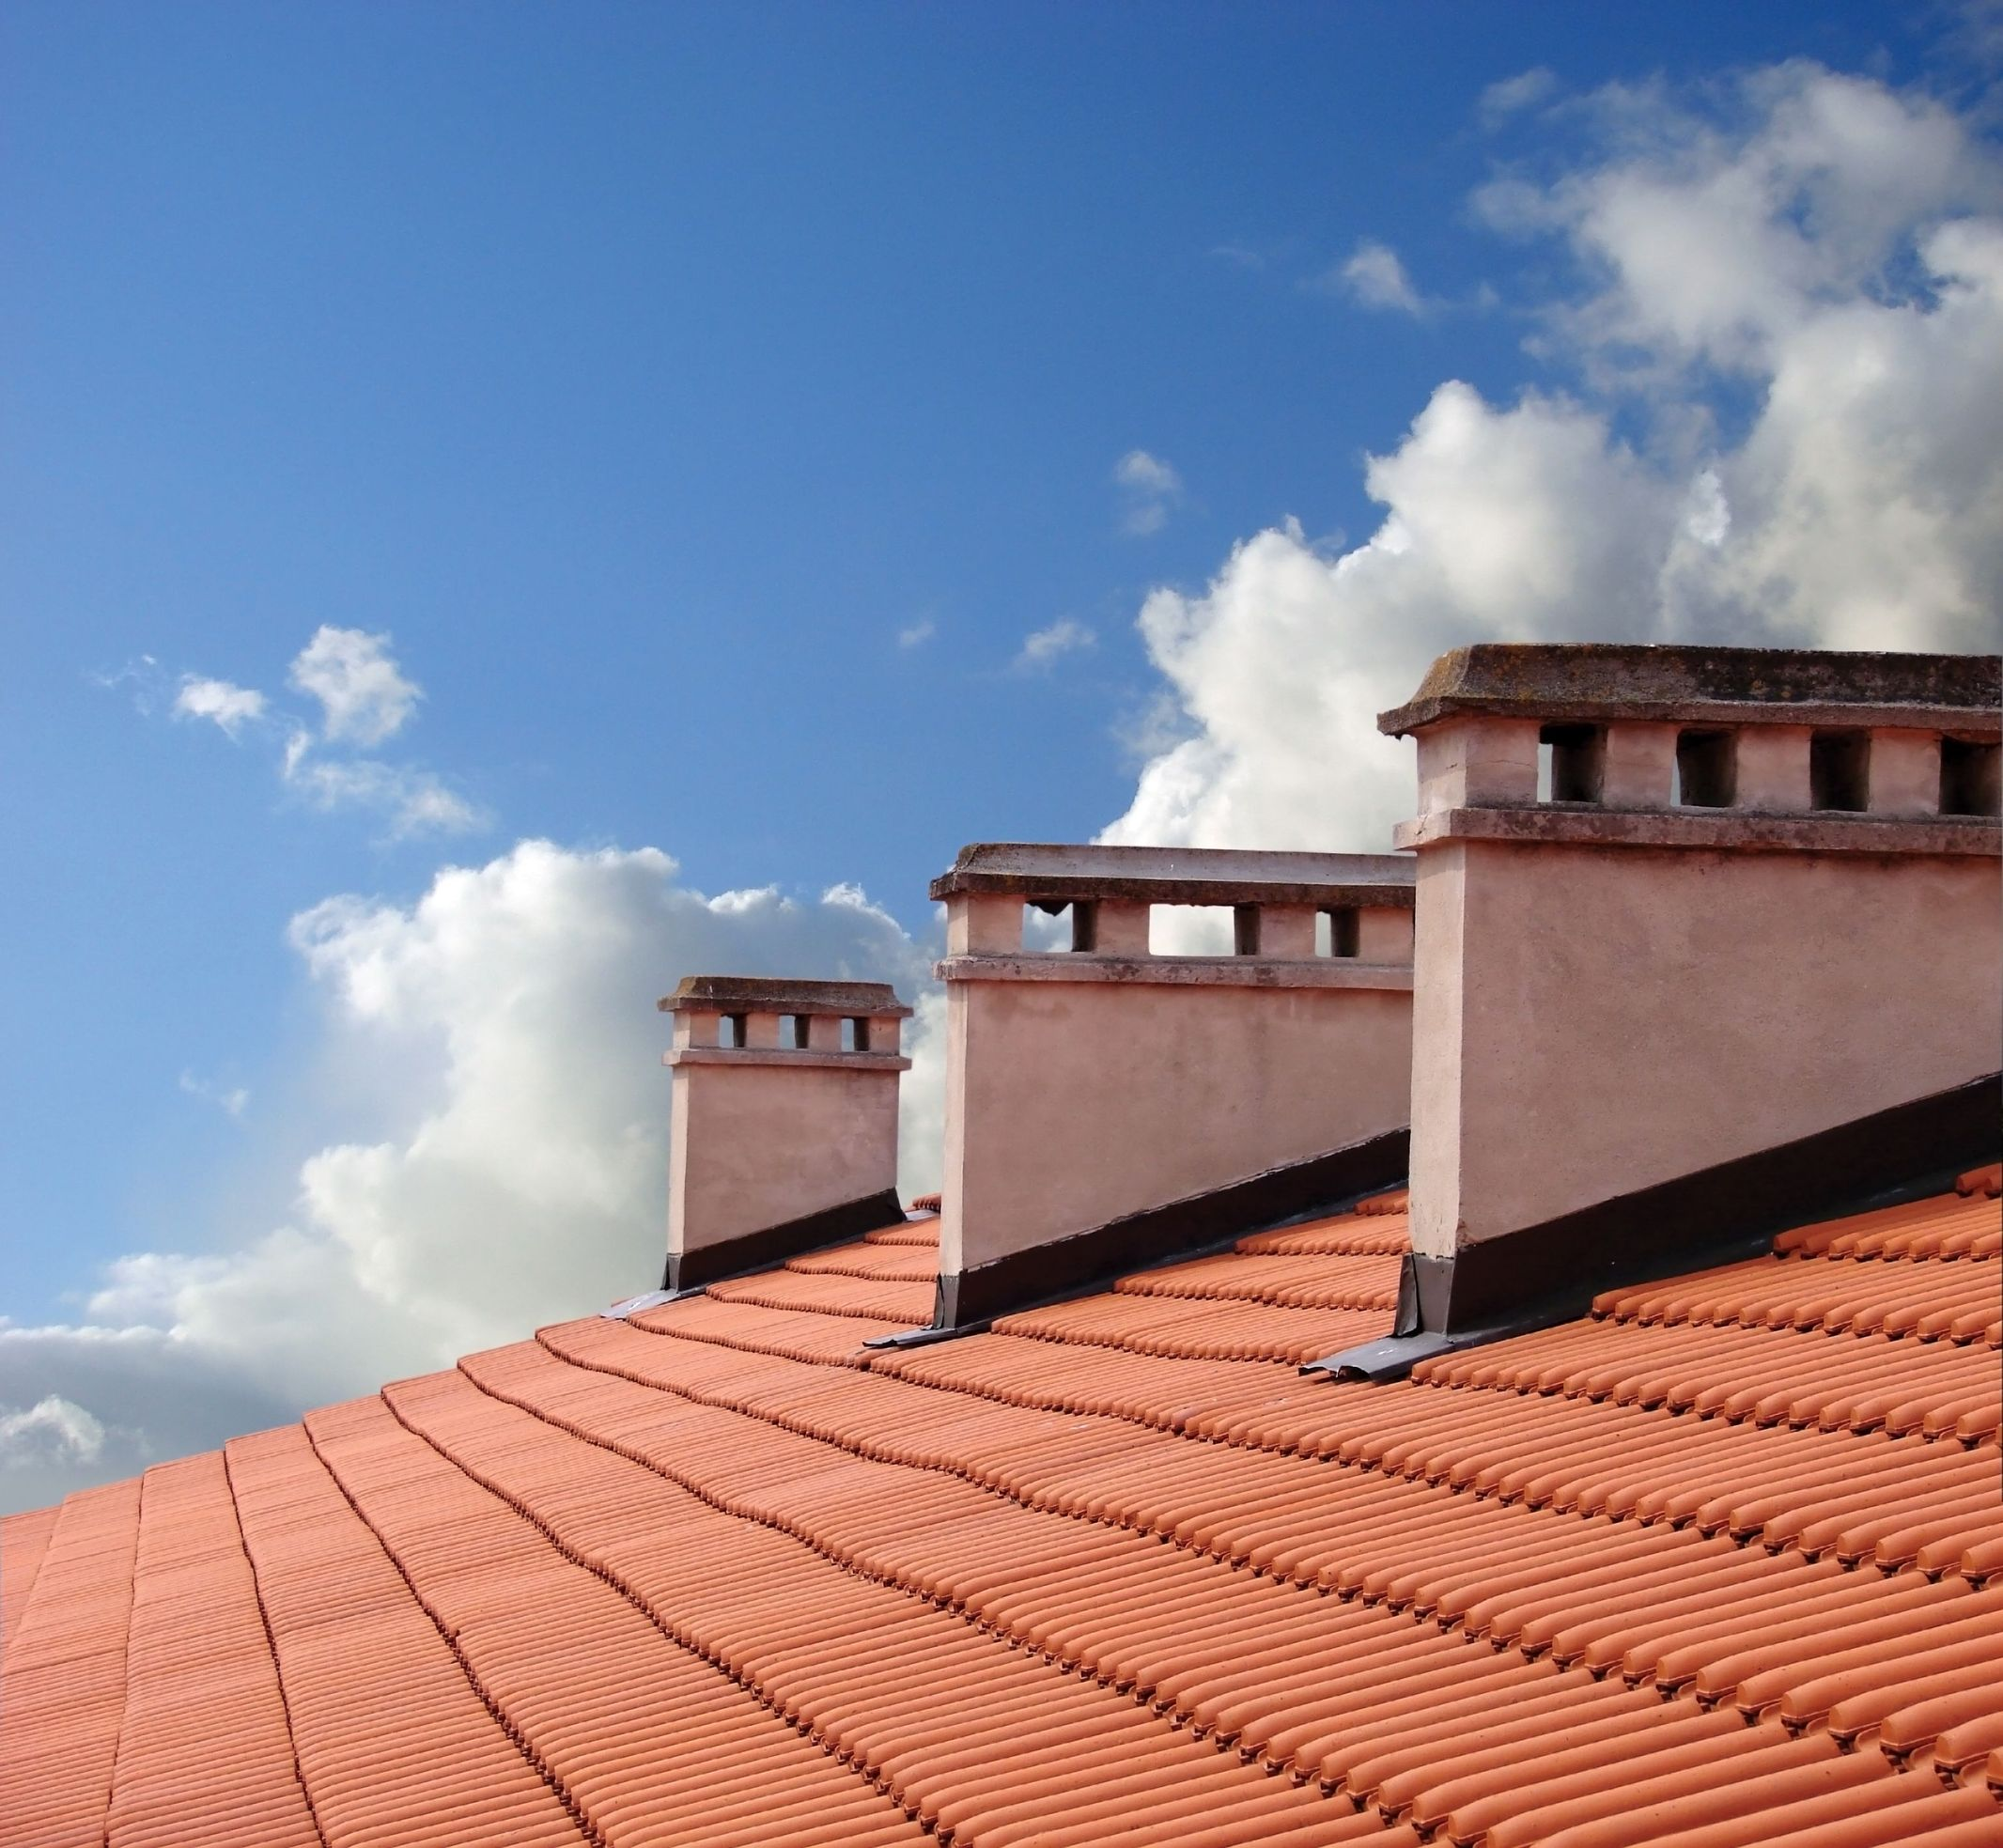 Chimney Clogged? Call Chimney Repair Services in Carroll County MD